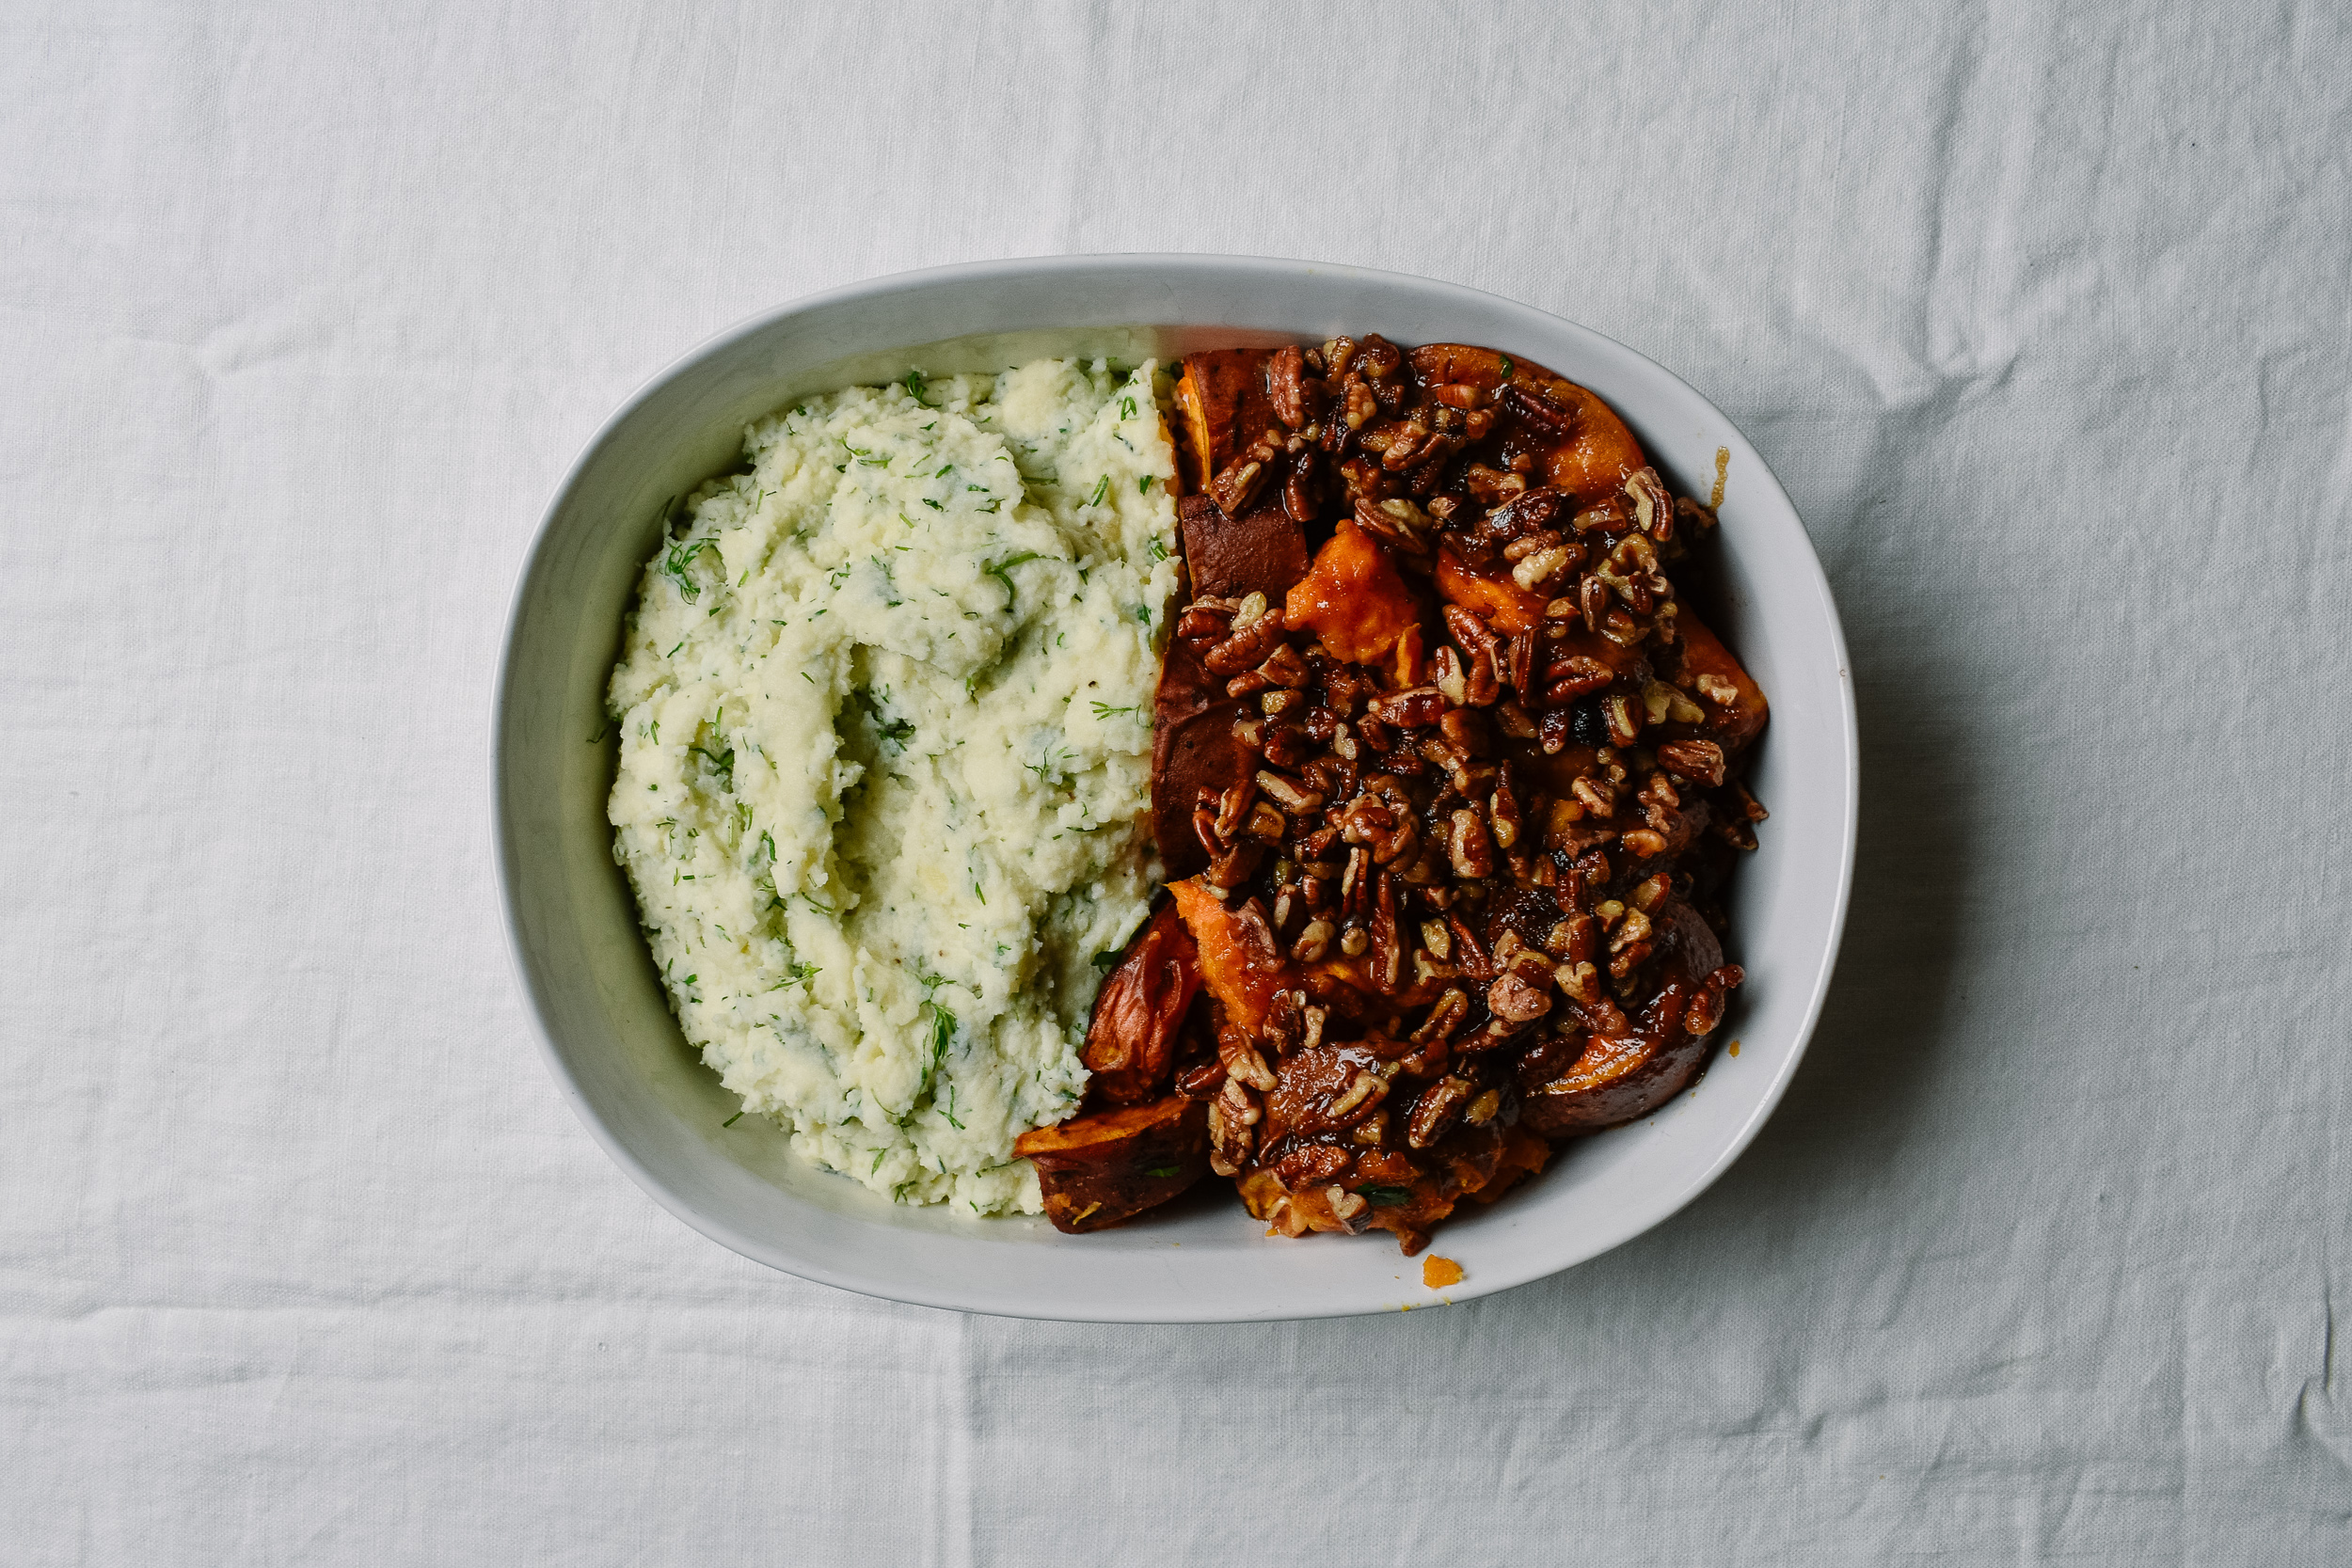 Mashed potatoes and sweet potatoes